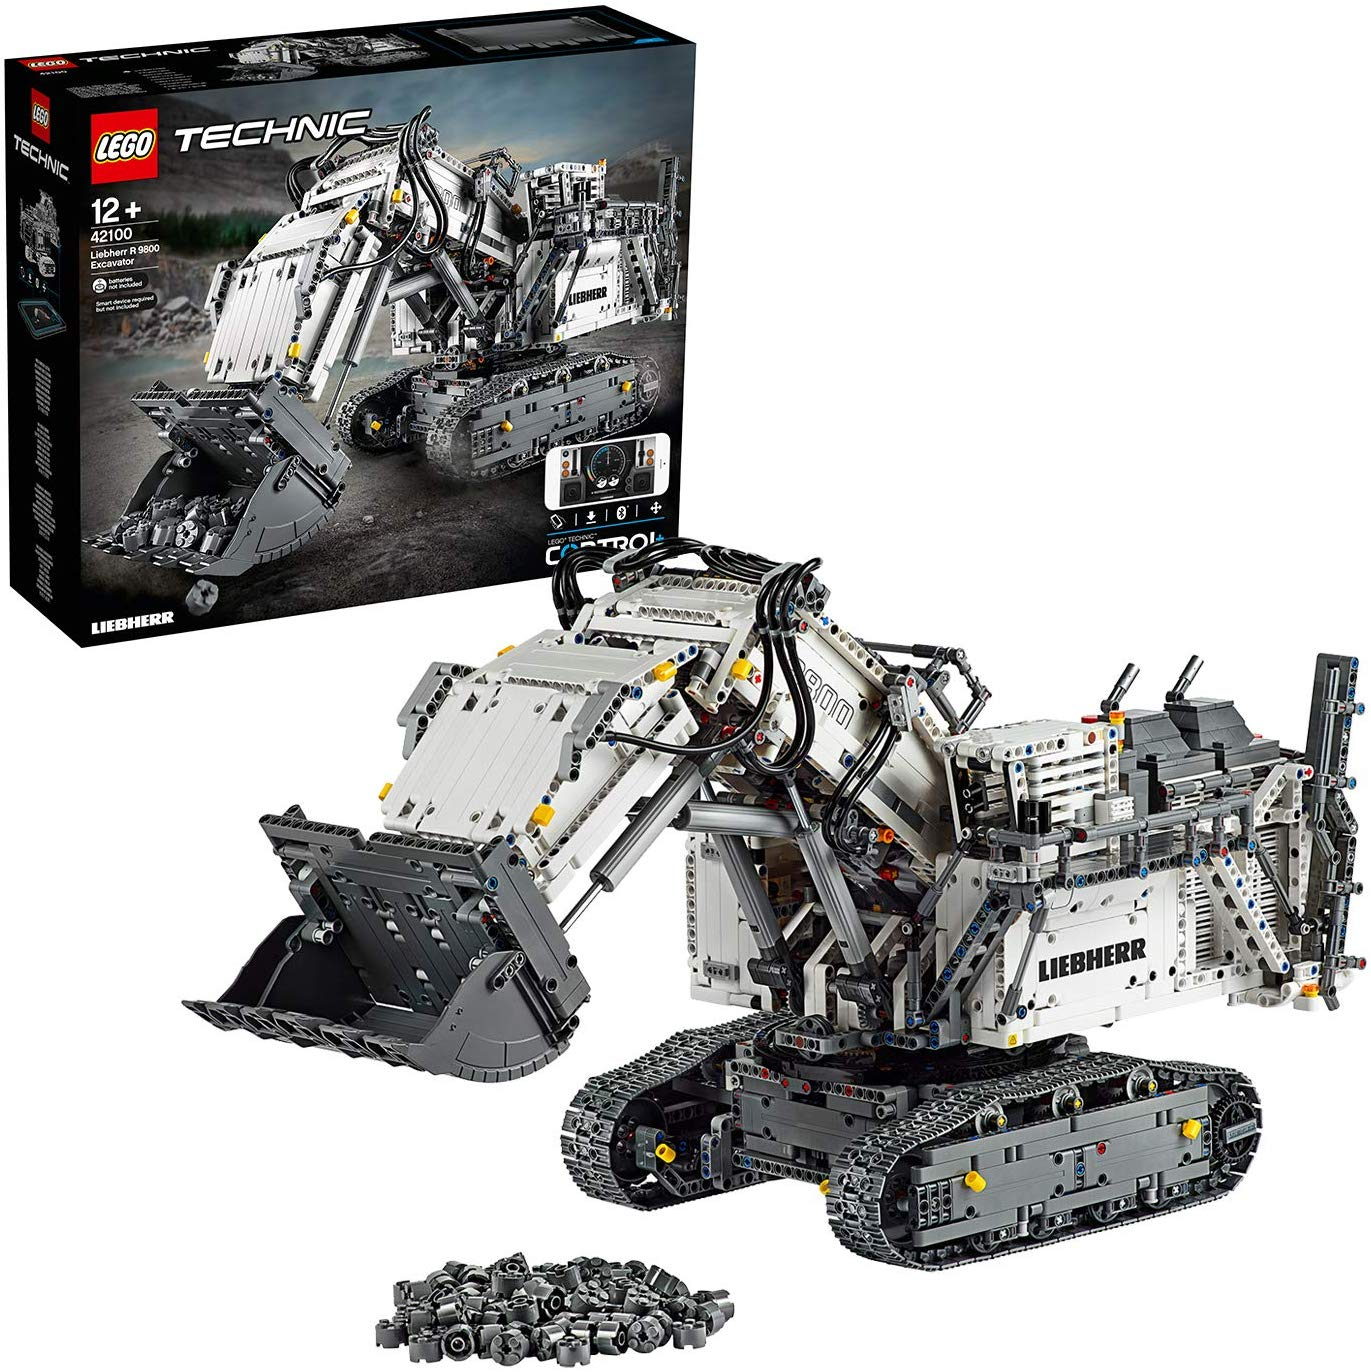 Save £80.45 on LEGO Technic Control+ Liebherr R 9800 Excavator App Controlled Advanced Construction Set